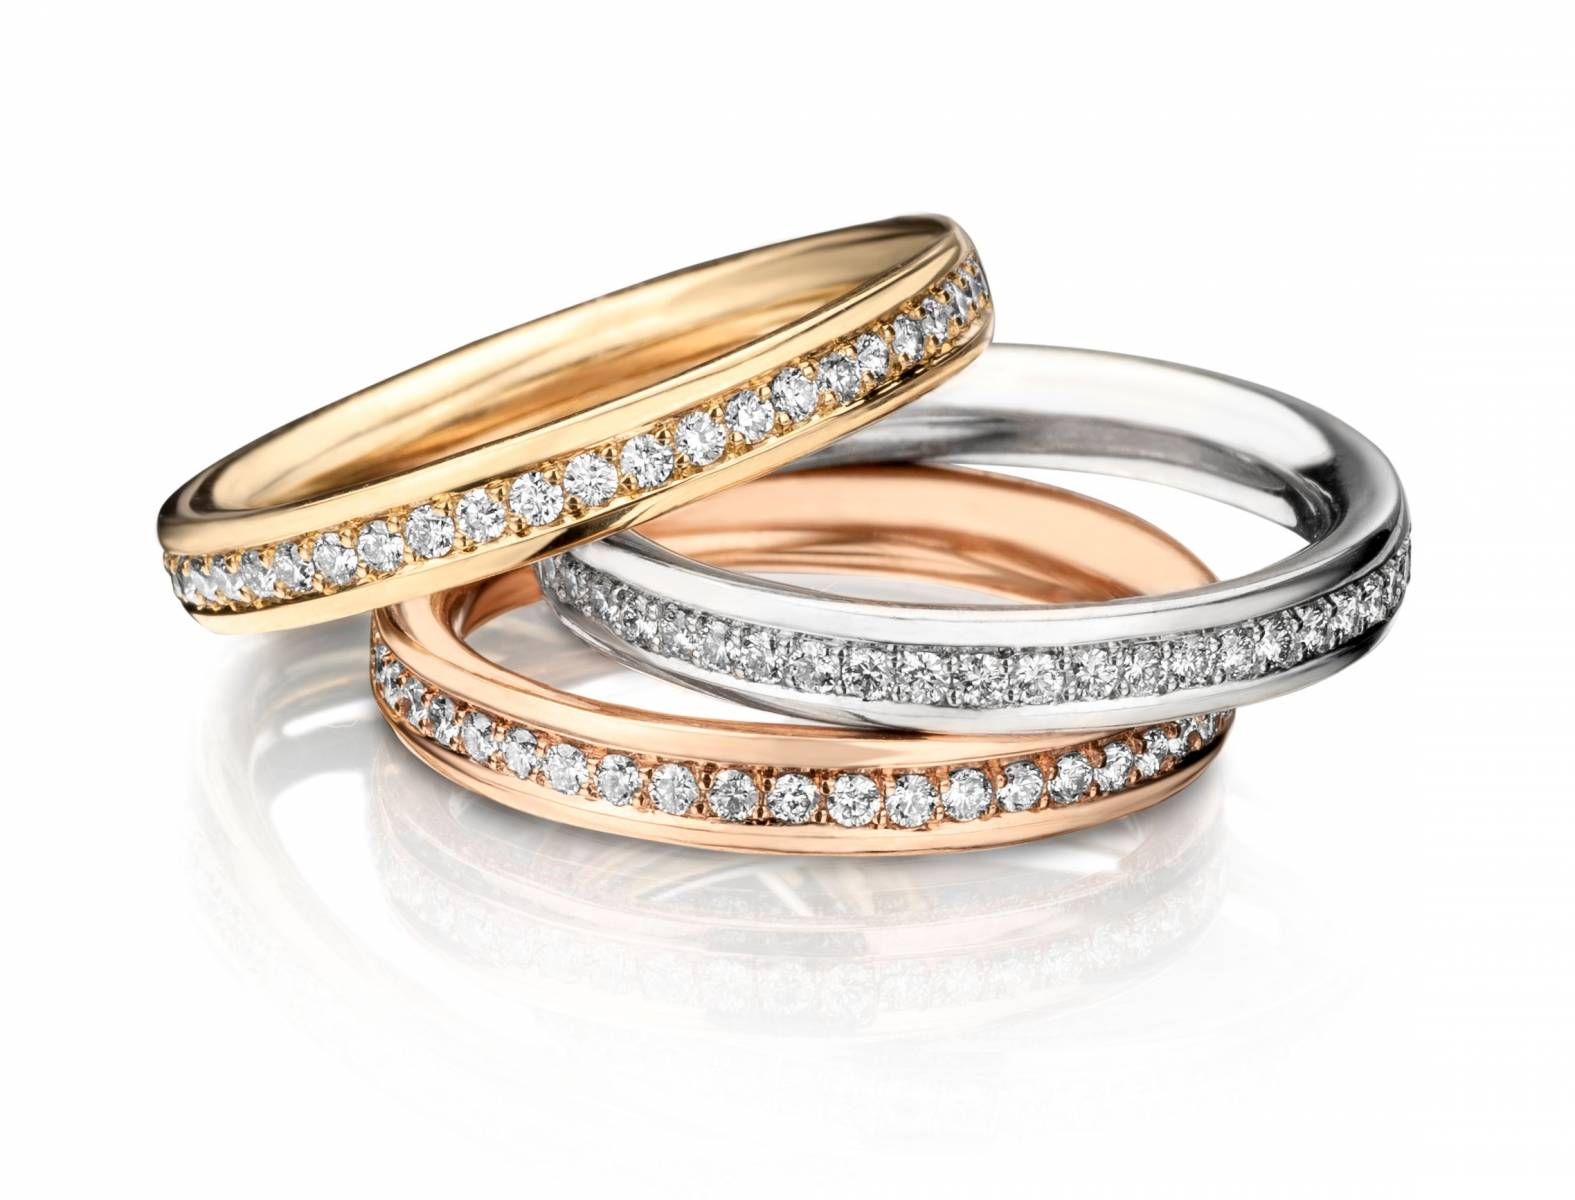 Juwelier Vandromme - Juwelen - Verlovingsring - Trouwring  – House of Weddings - 4